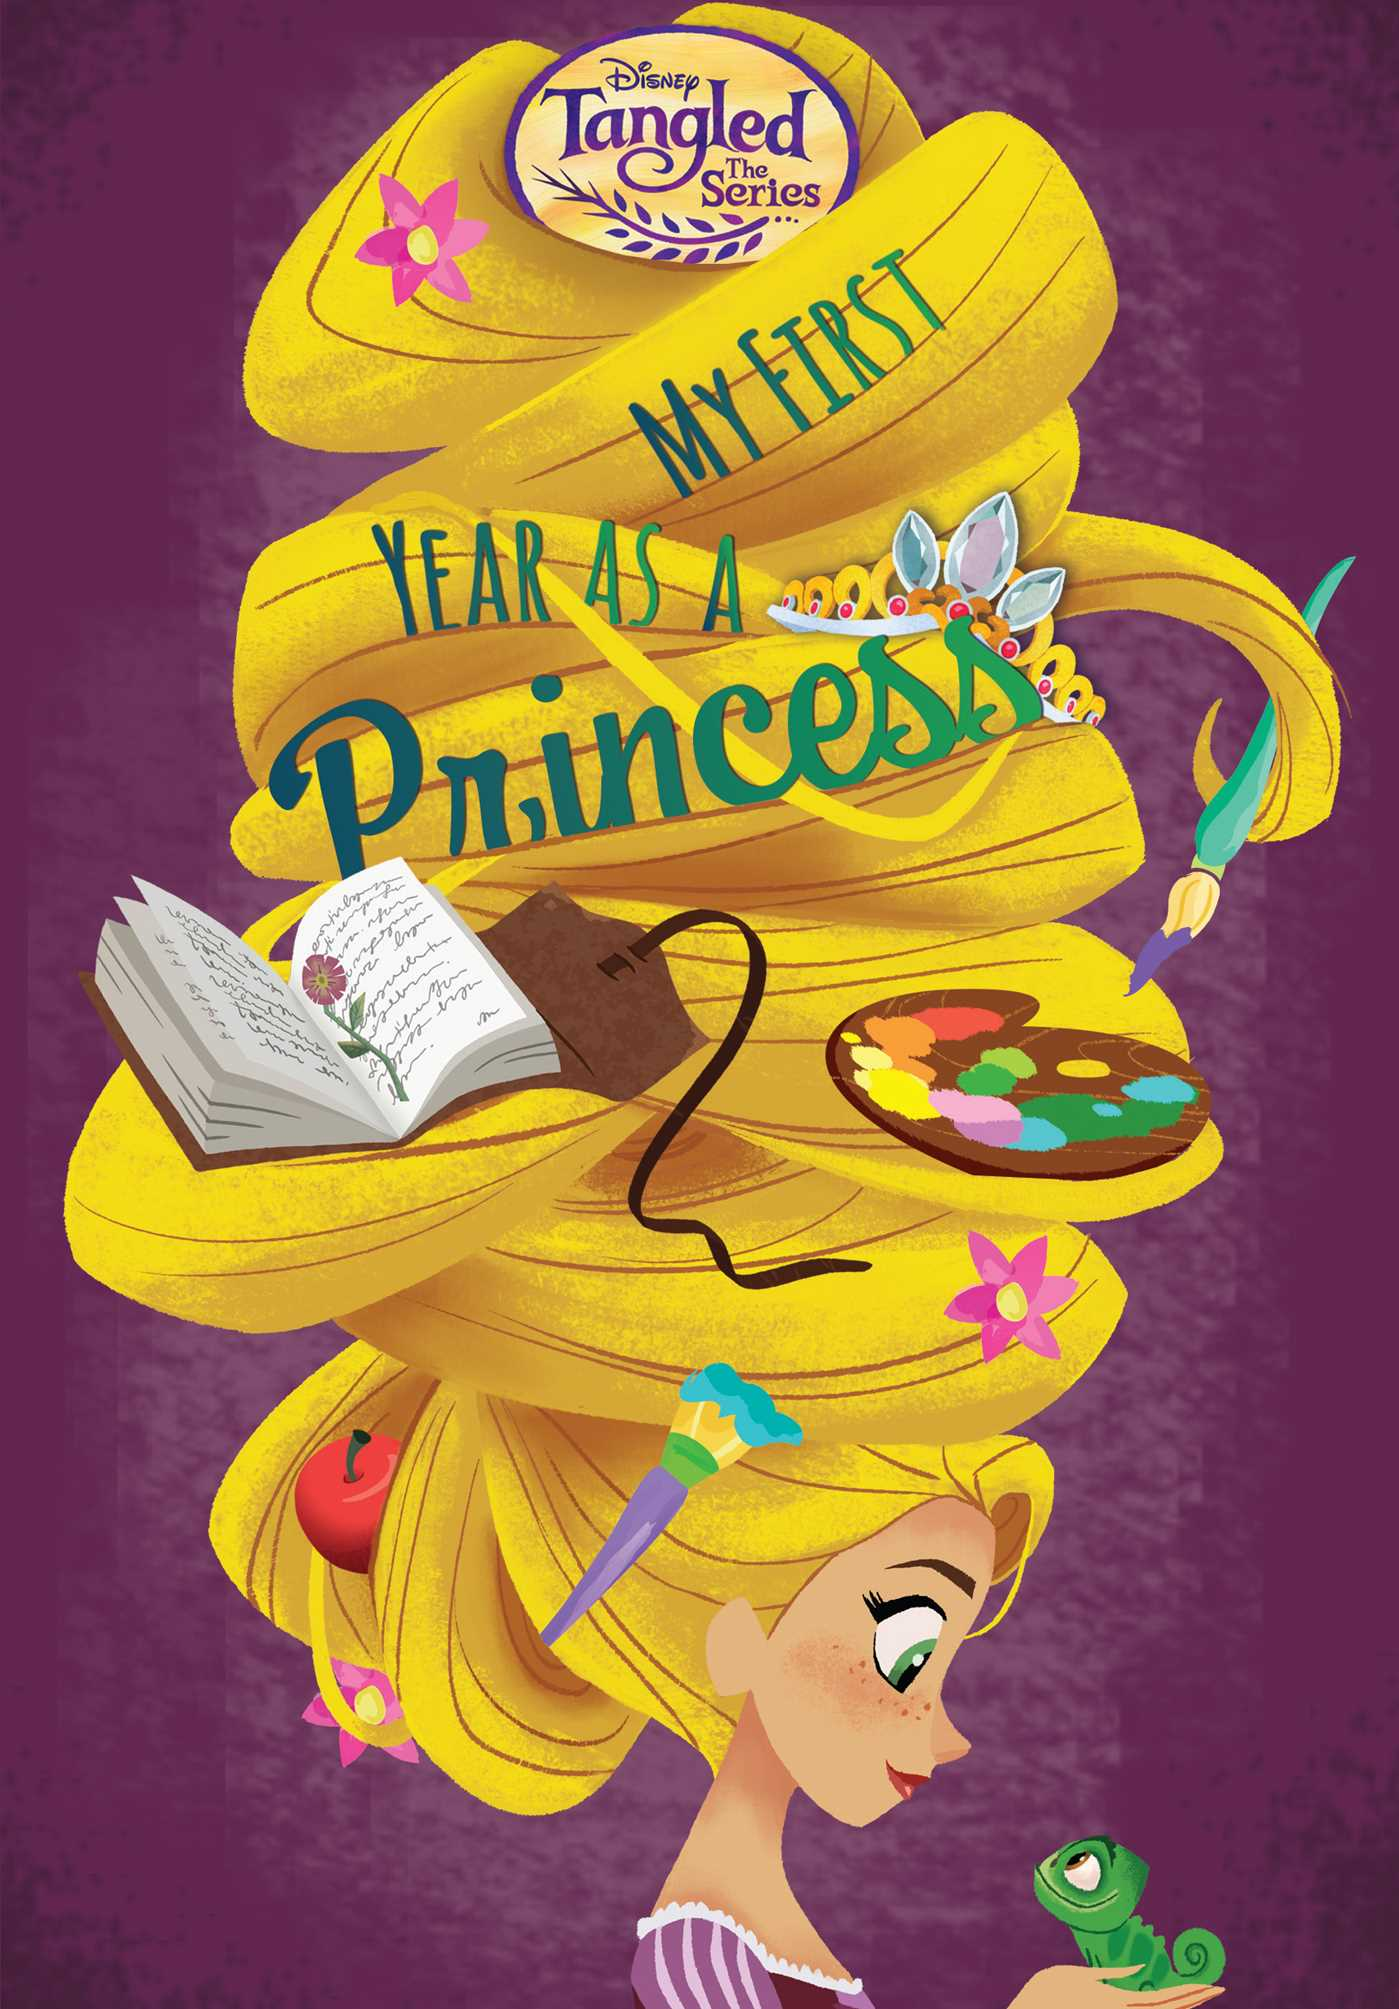 Disney tangled the series my first year as a princess 9780794441074 hr